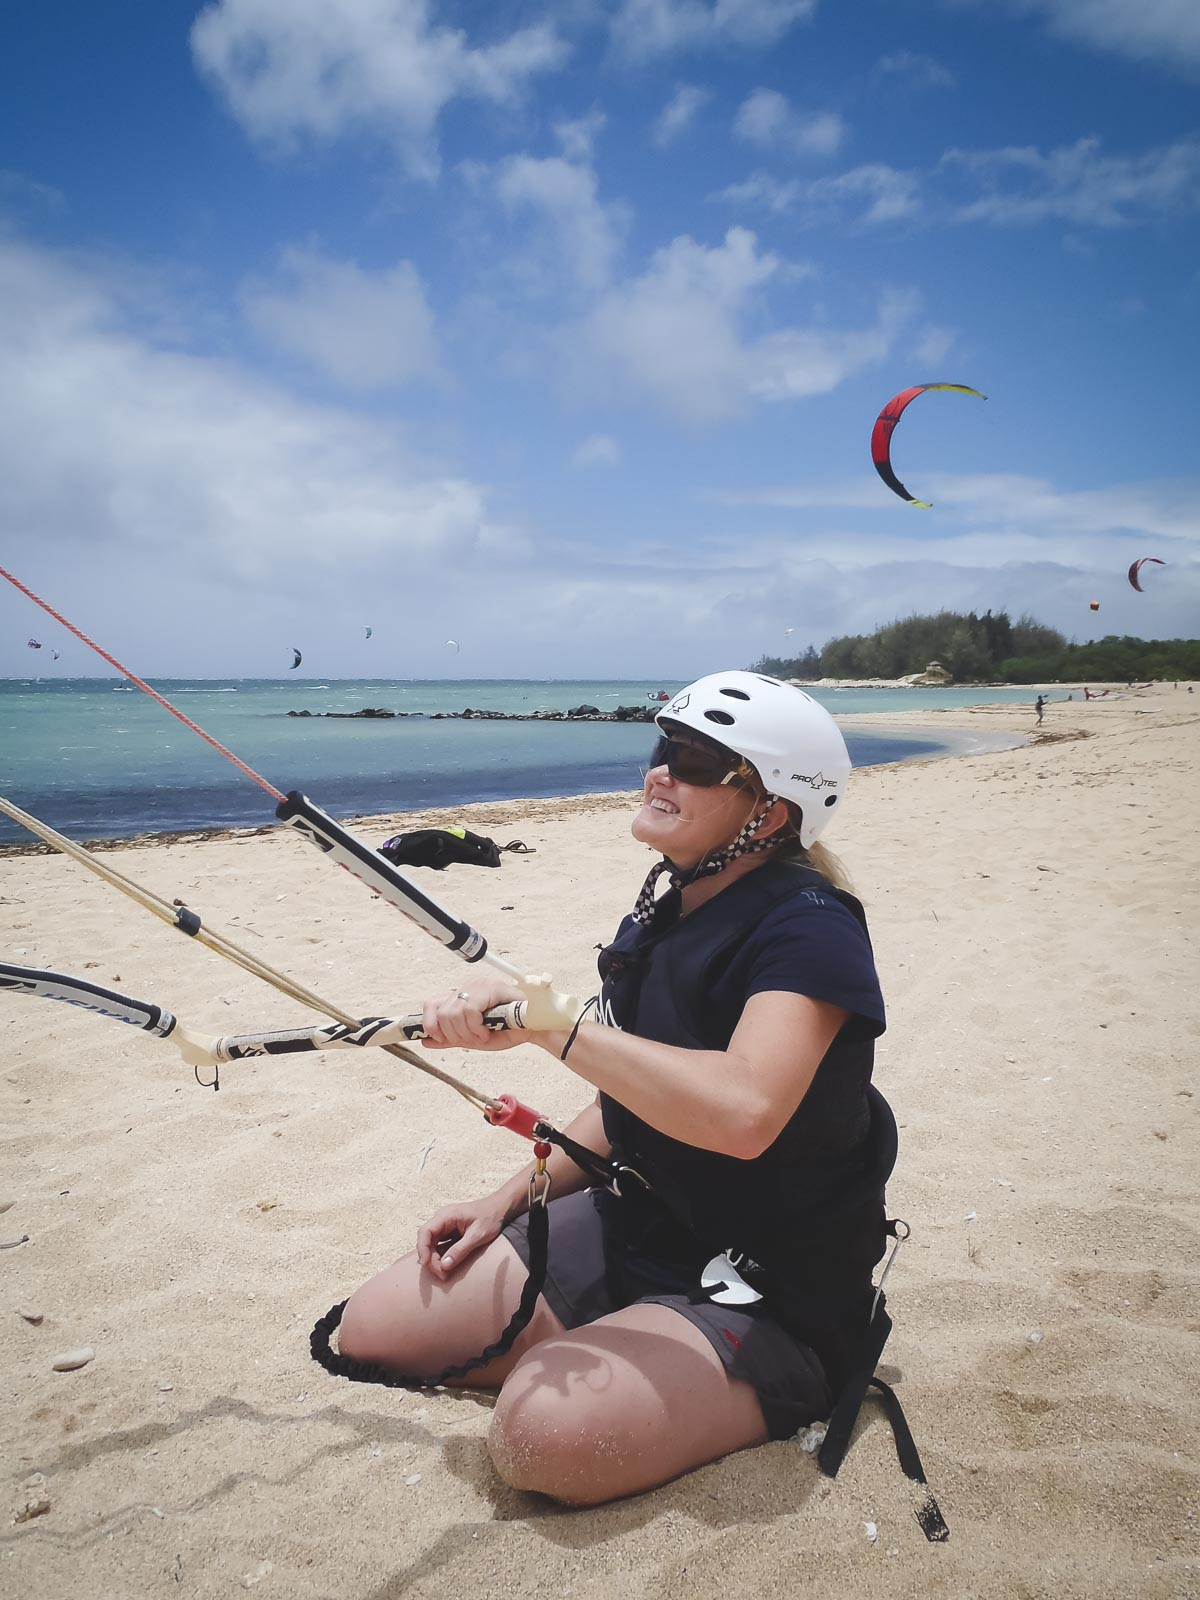 Kiteboarding lessons in Maui